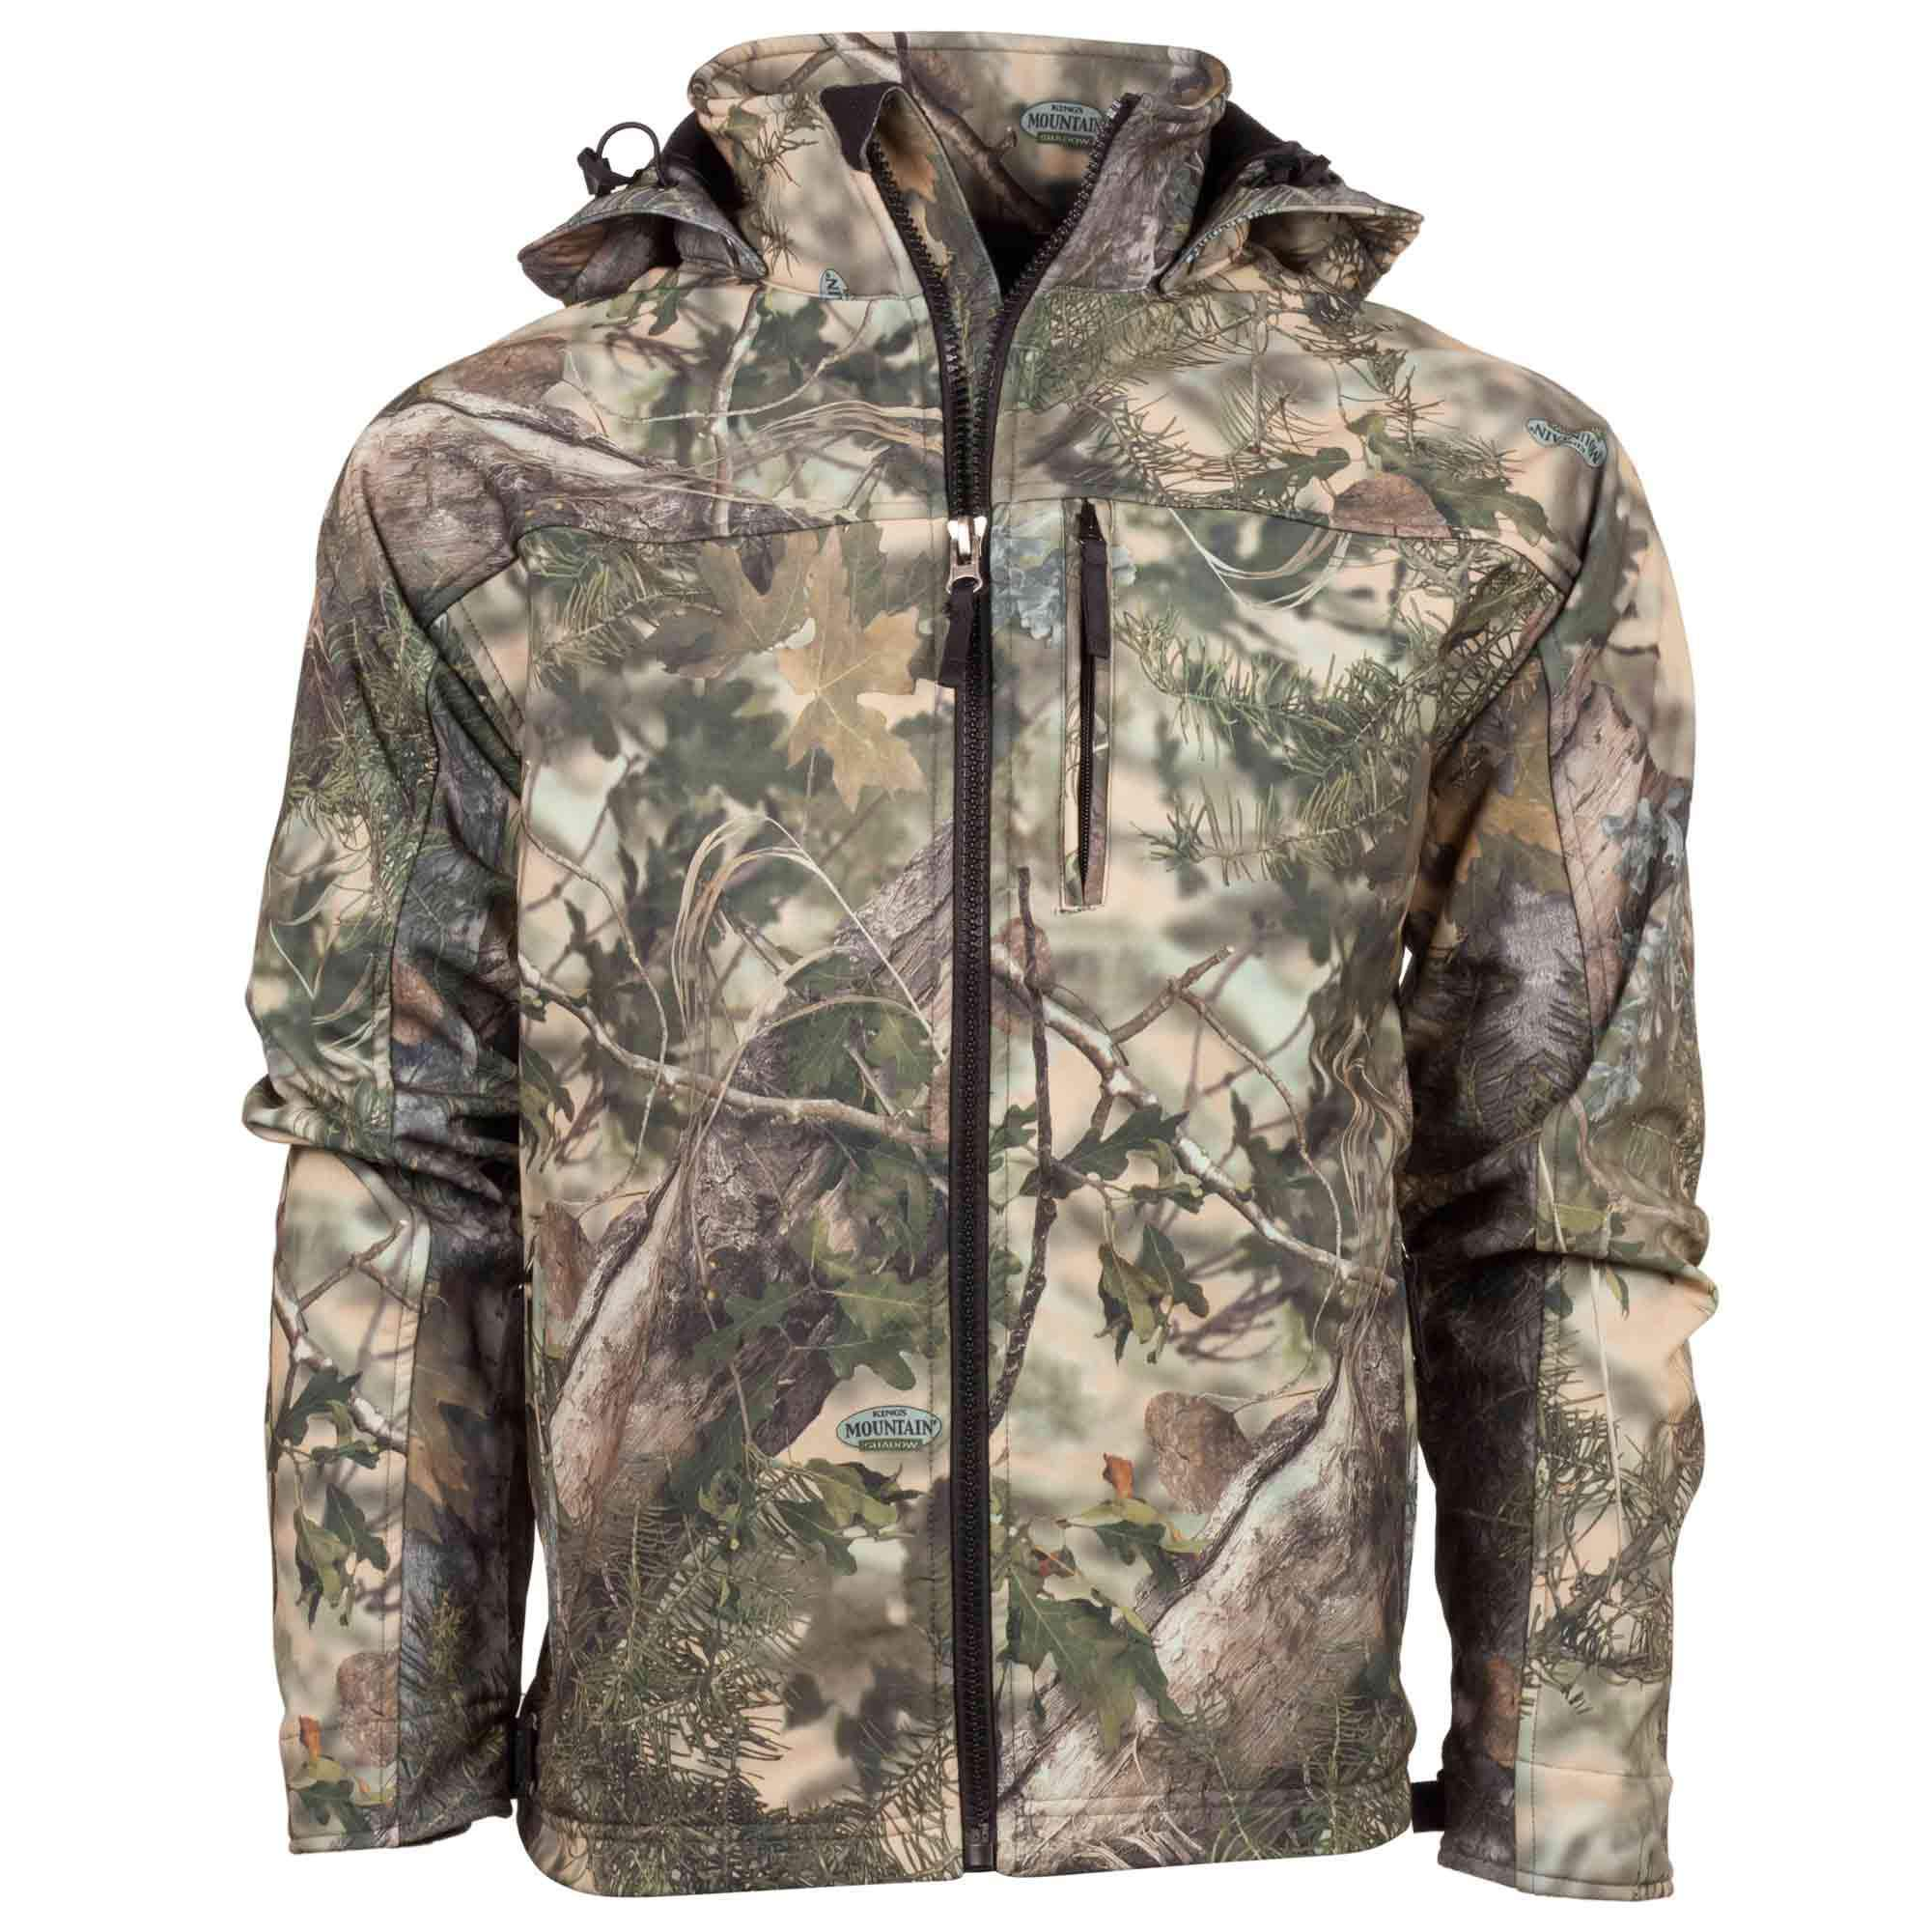 07be5dc5bdbae Guide's Choice Soft Shell Hooded Jacket | King's Camo